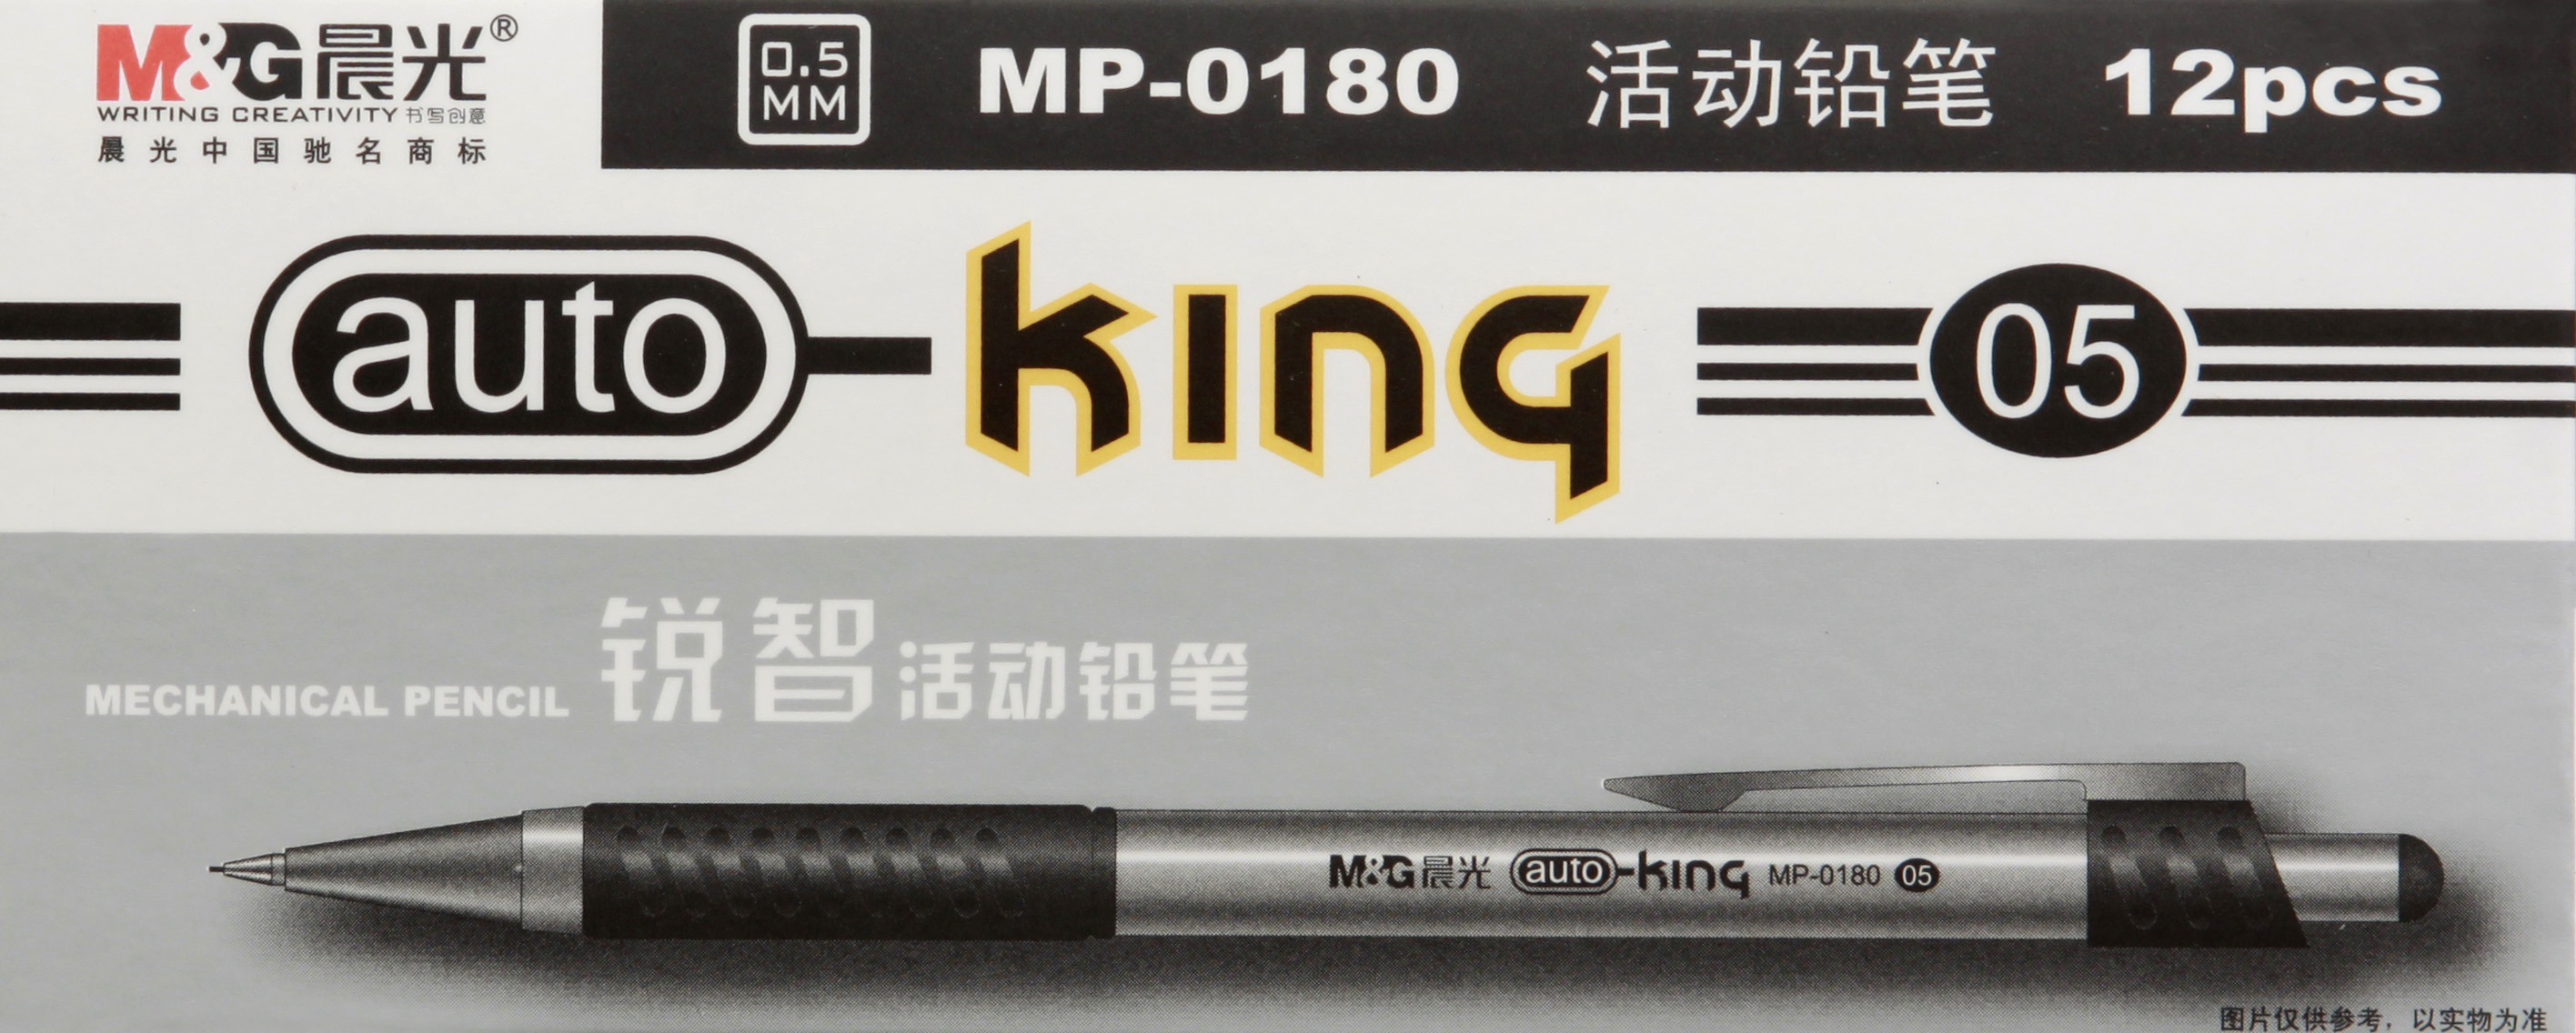 M G Discount Office Supplies And Office Stationery